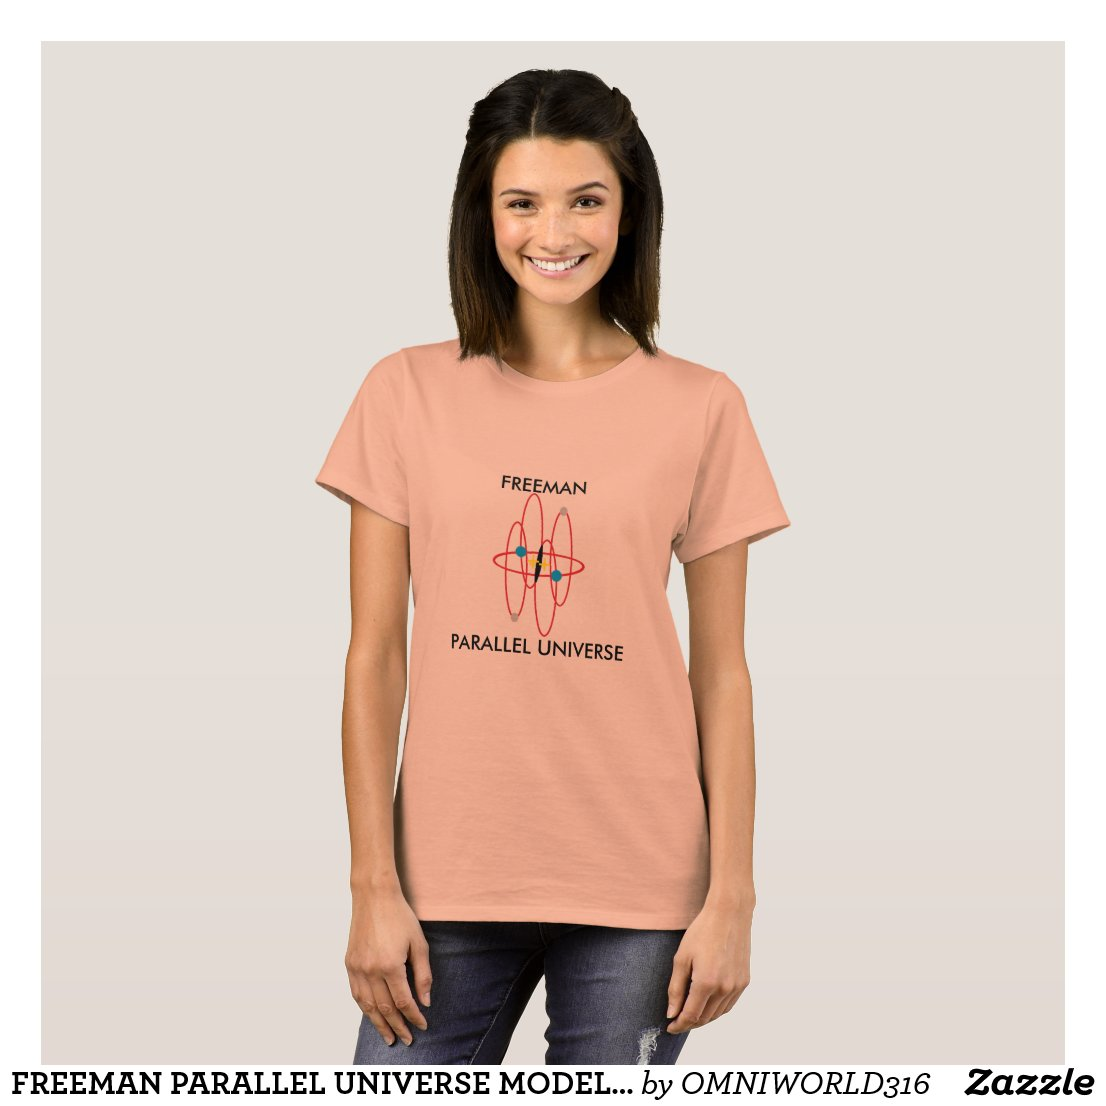 FREEMAN PARALLEL UNIVERSE MODEL TSHIRT